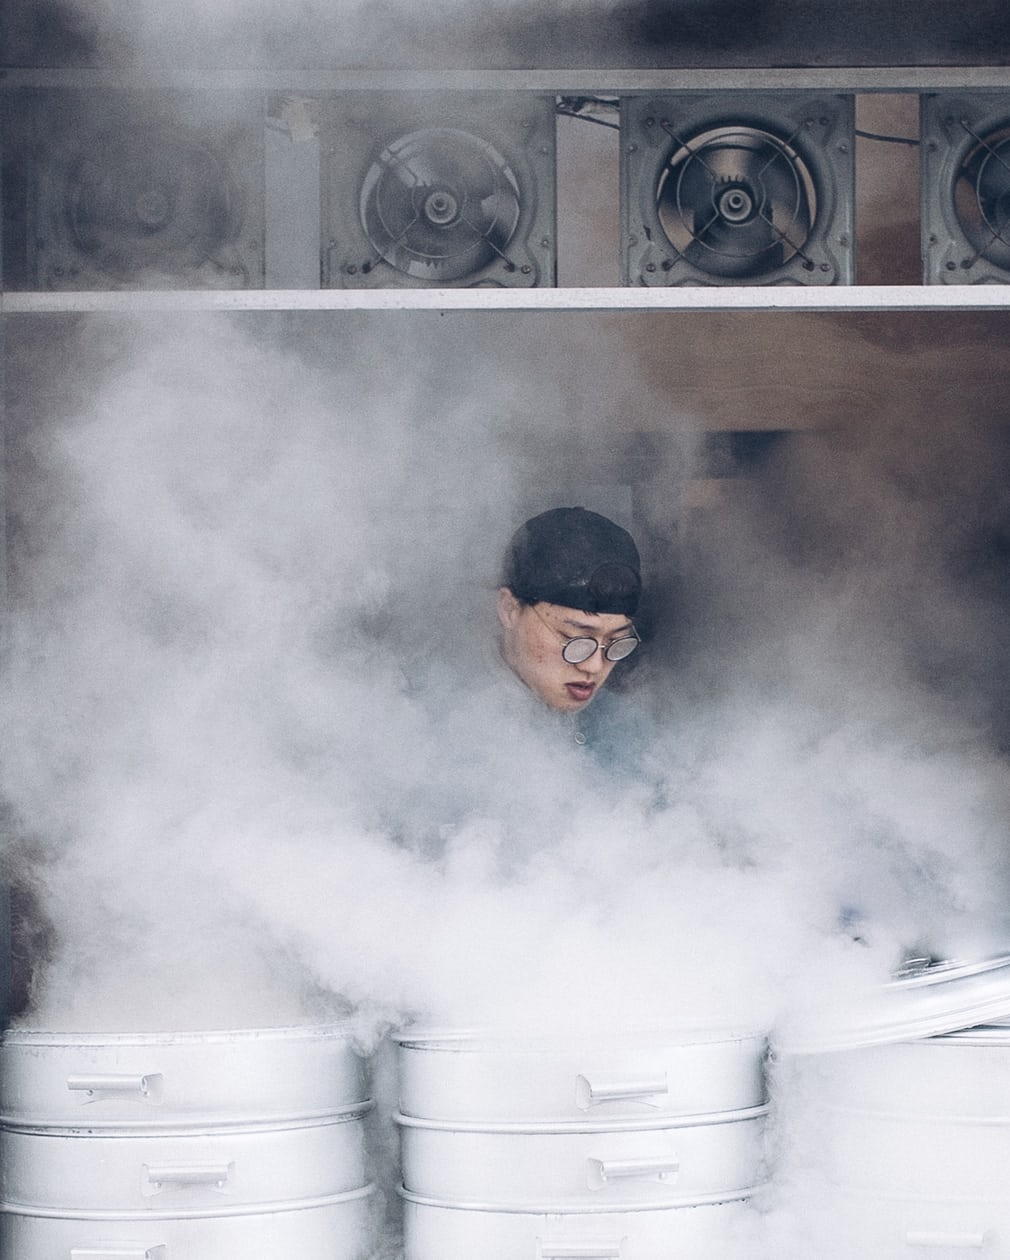 Letting off steam: South Korea's street food vendors – in pictures